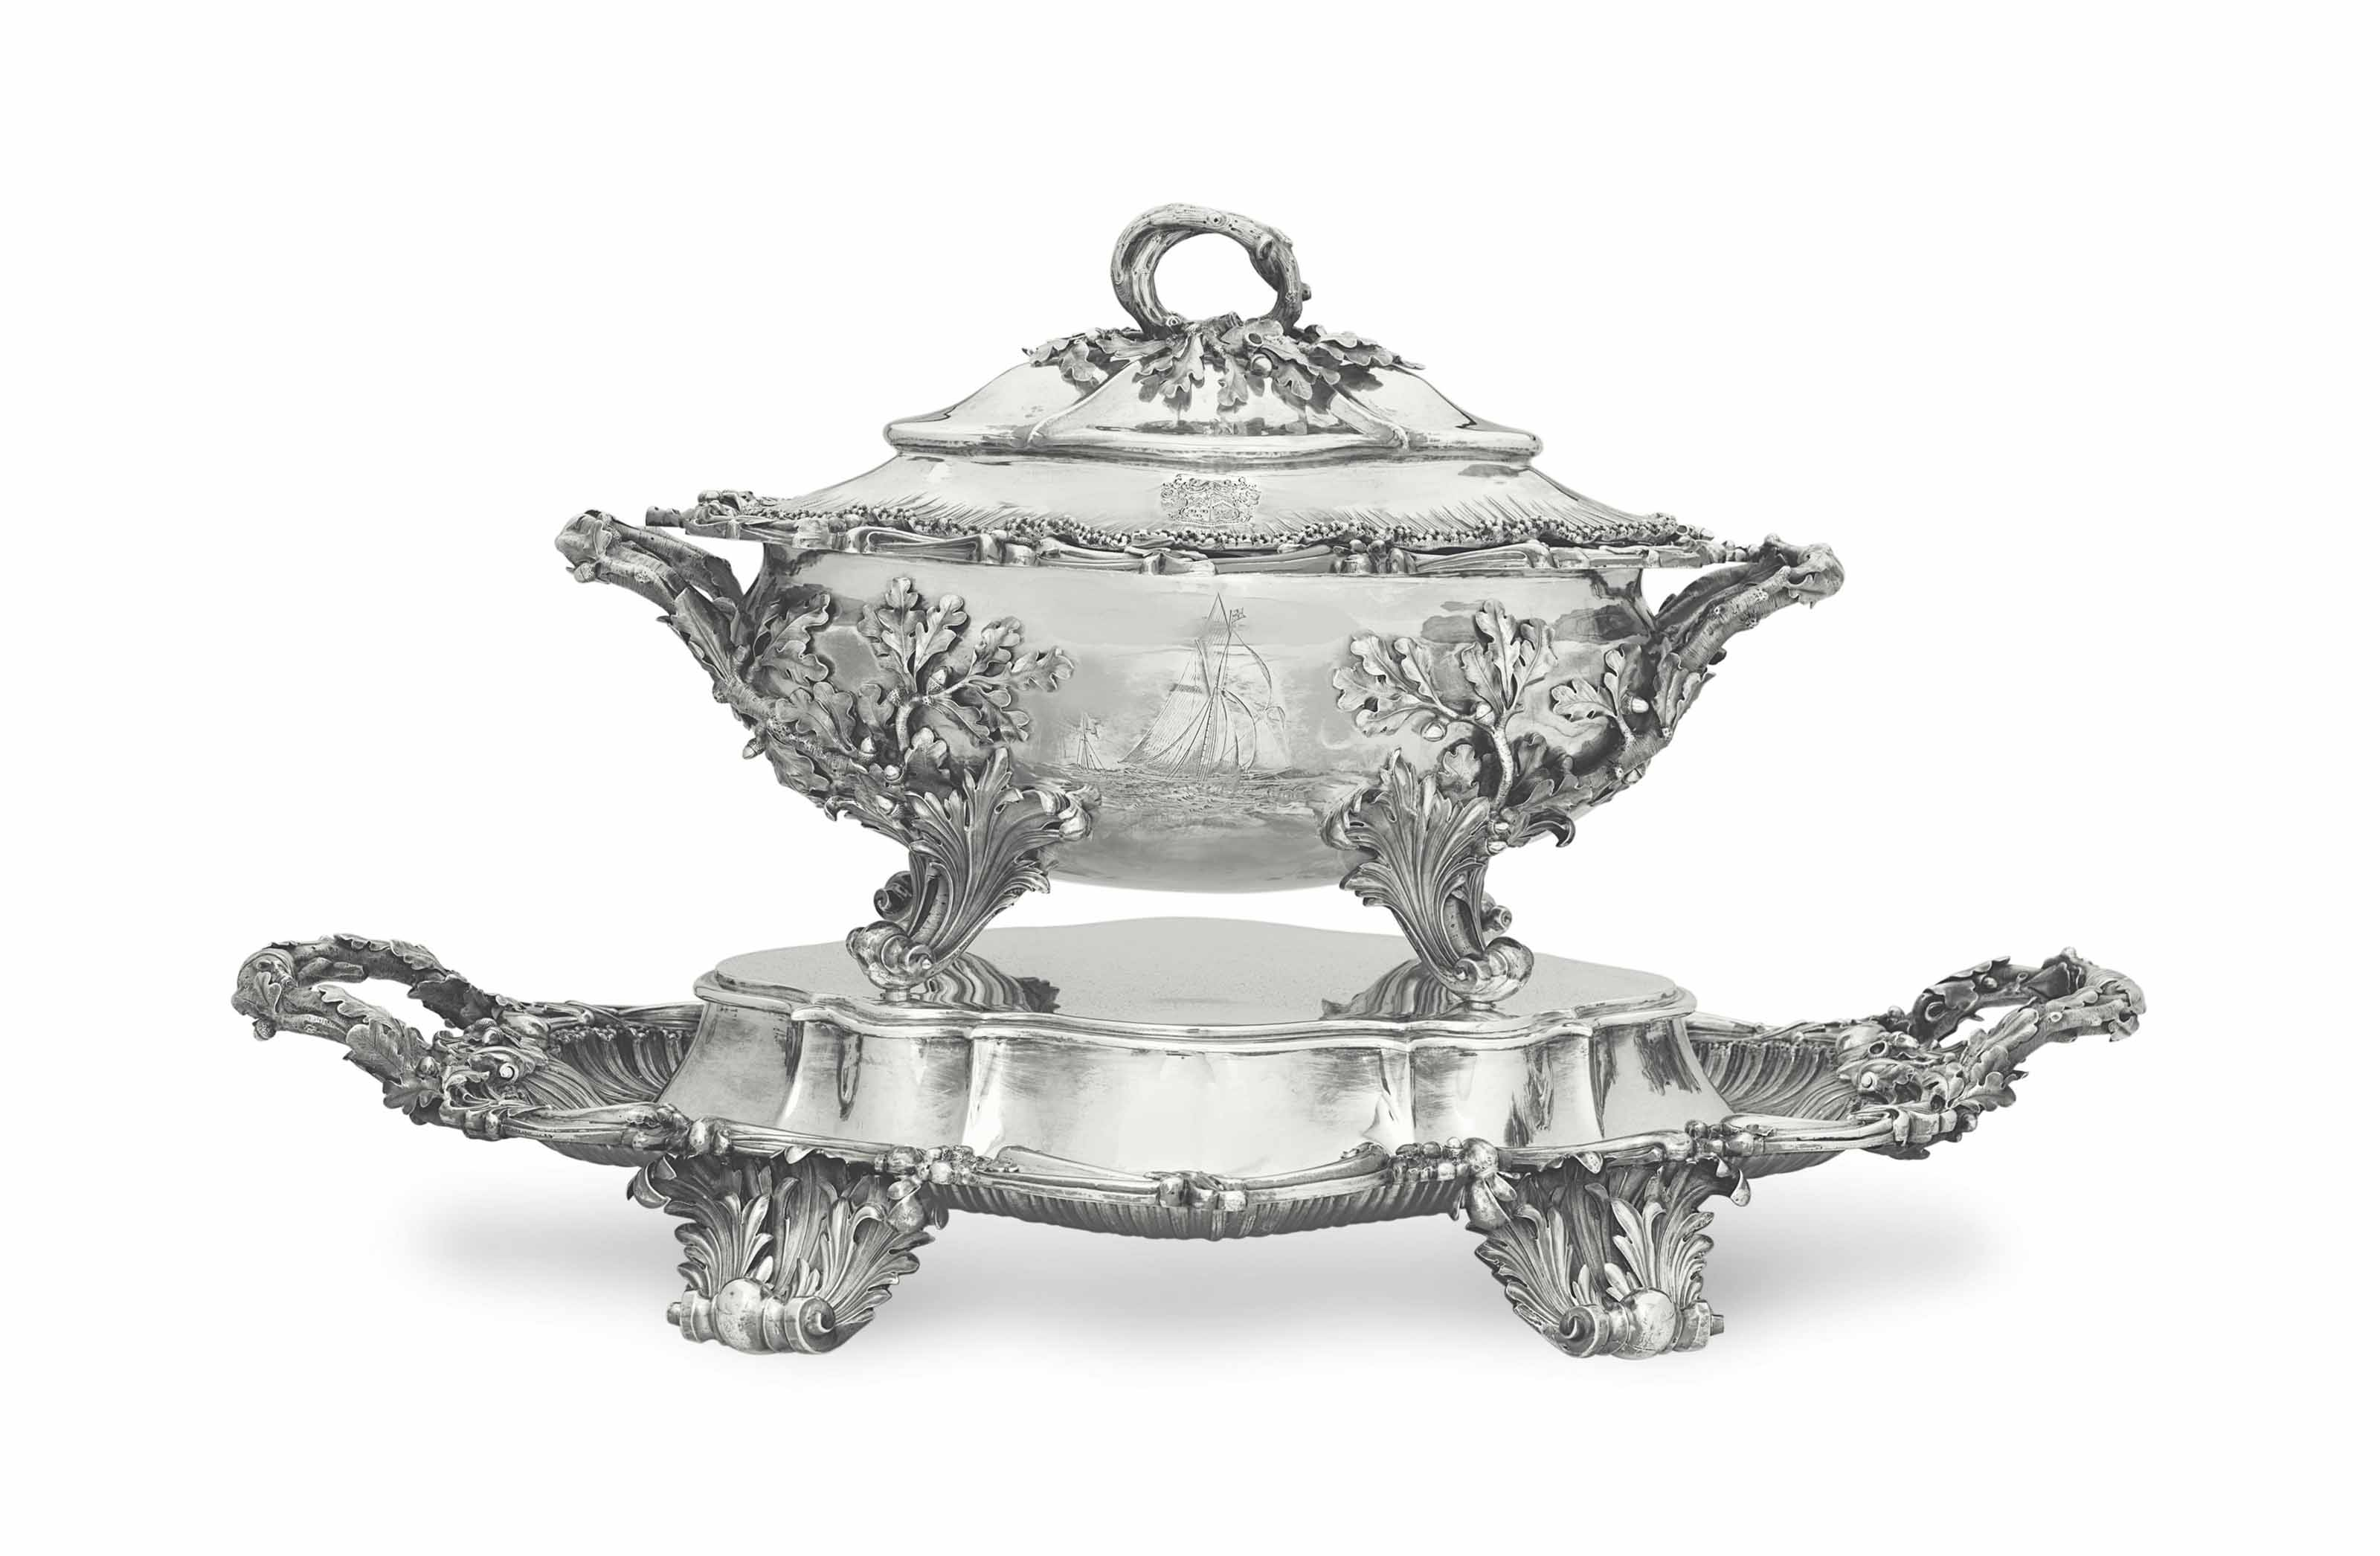 A WILLIAM IV SILVER SOUP TUREE